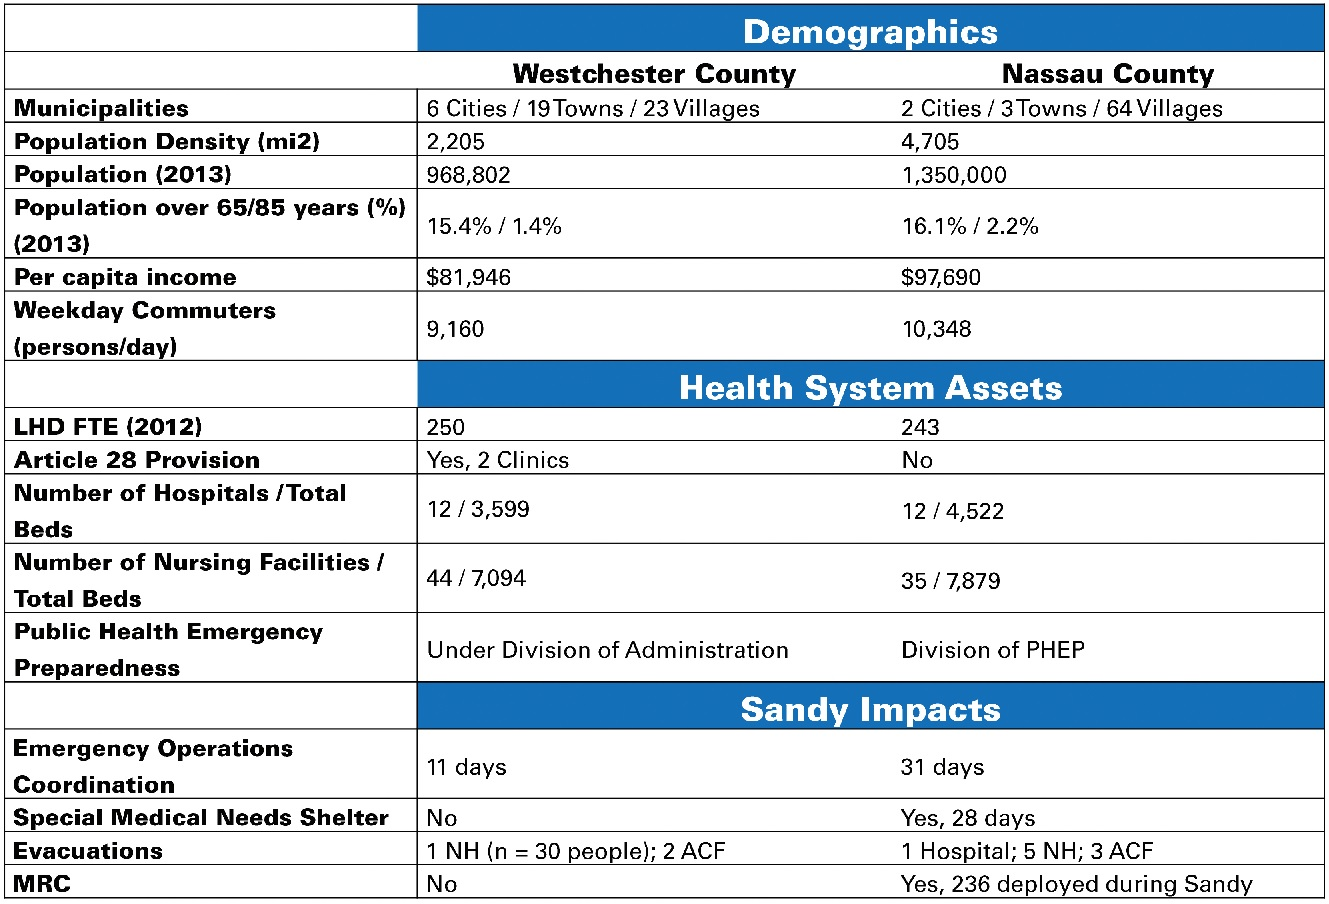 Similarities and Differences Between the County Health Departments